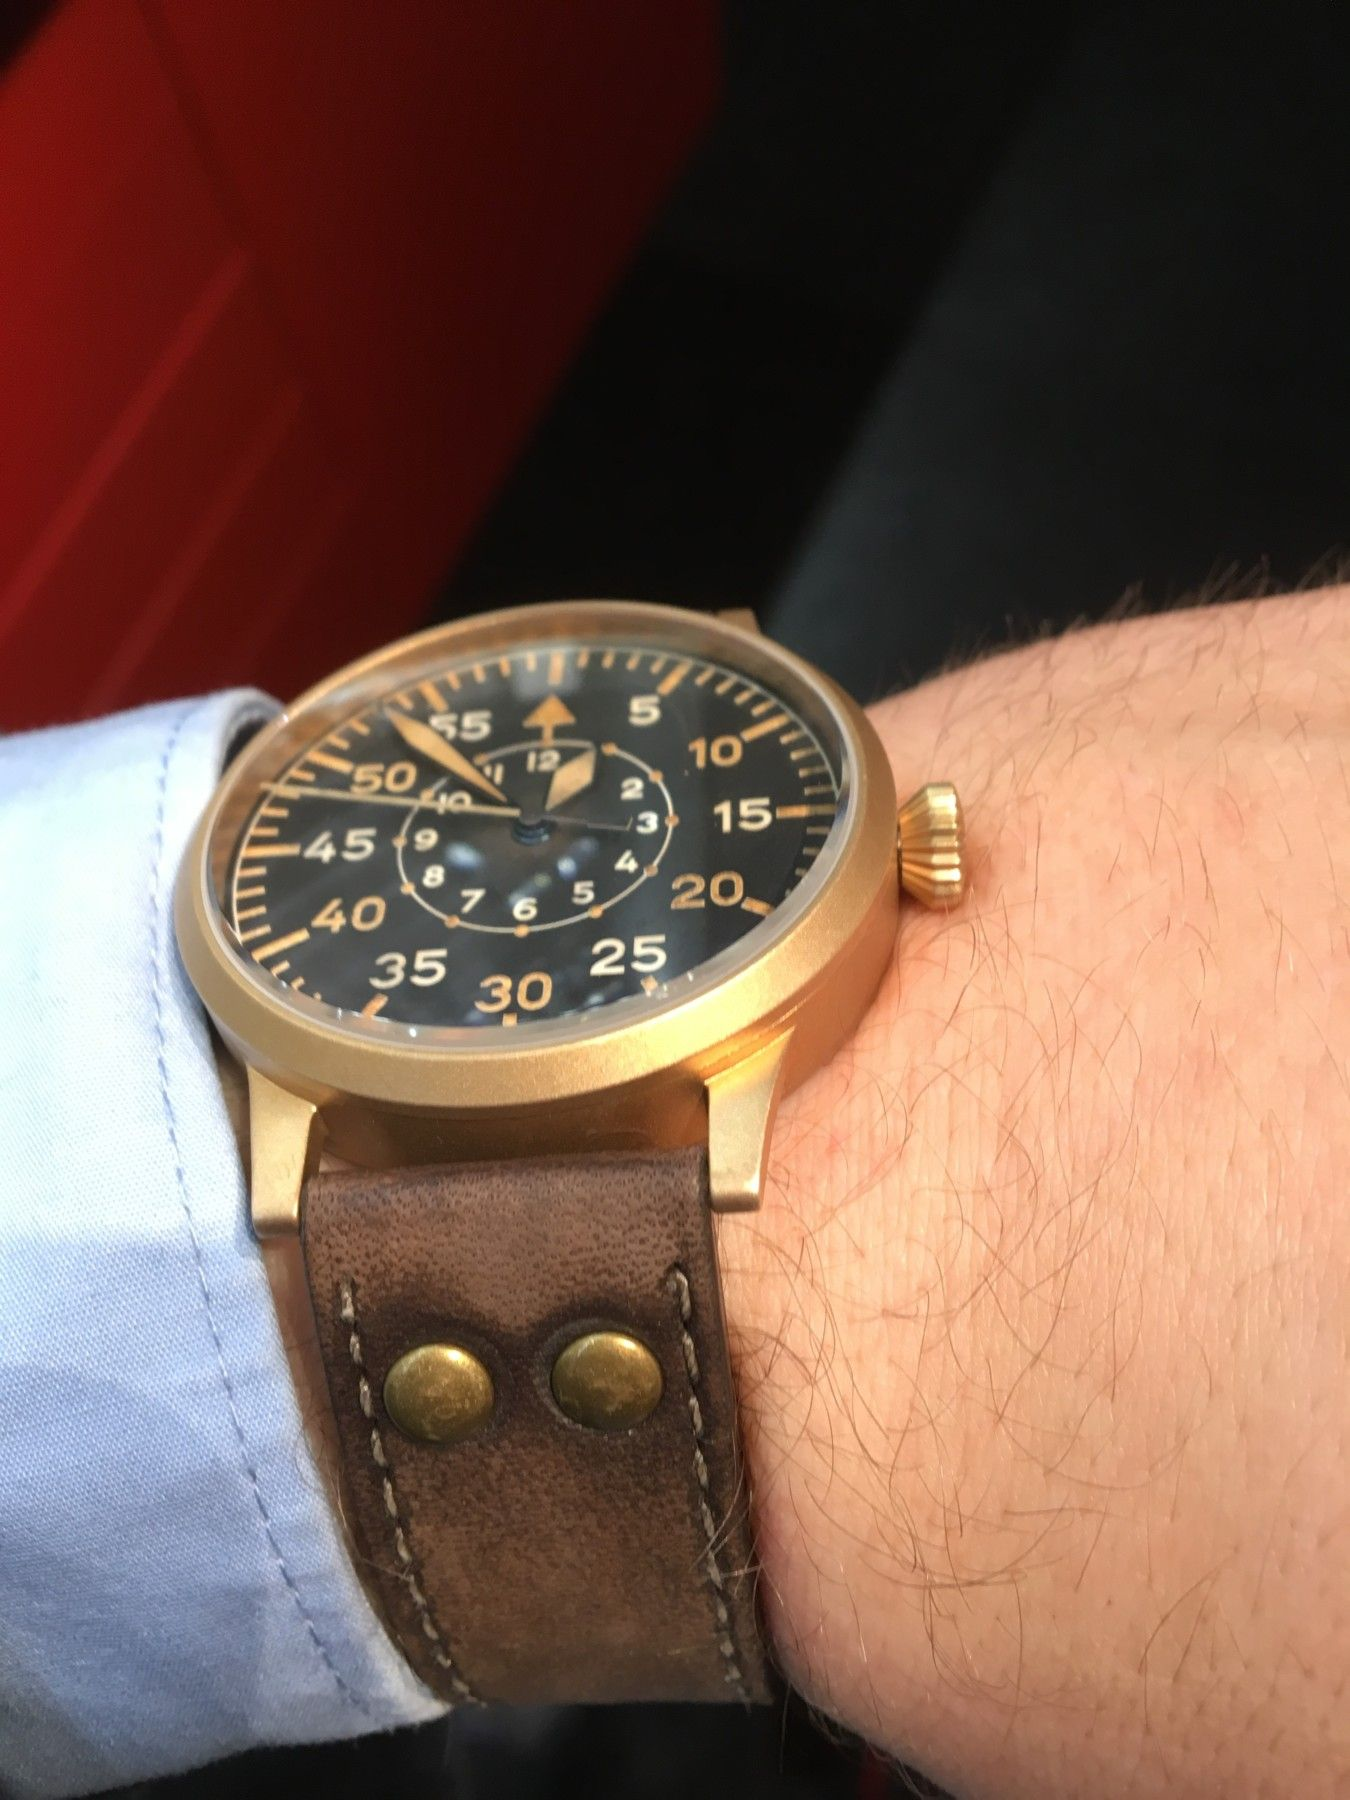 Laco Bronze Beobachtungsuhr 45mm Muster   LACO Beobachtungsuhr ...